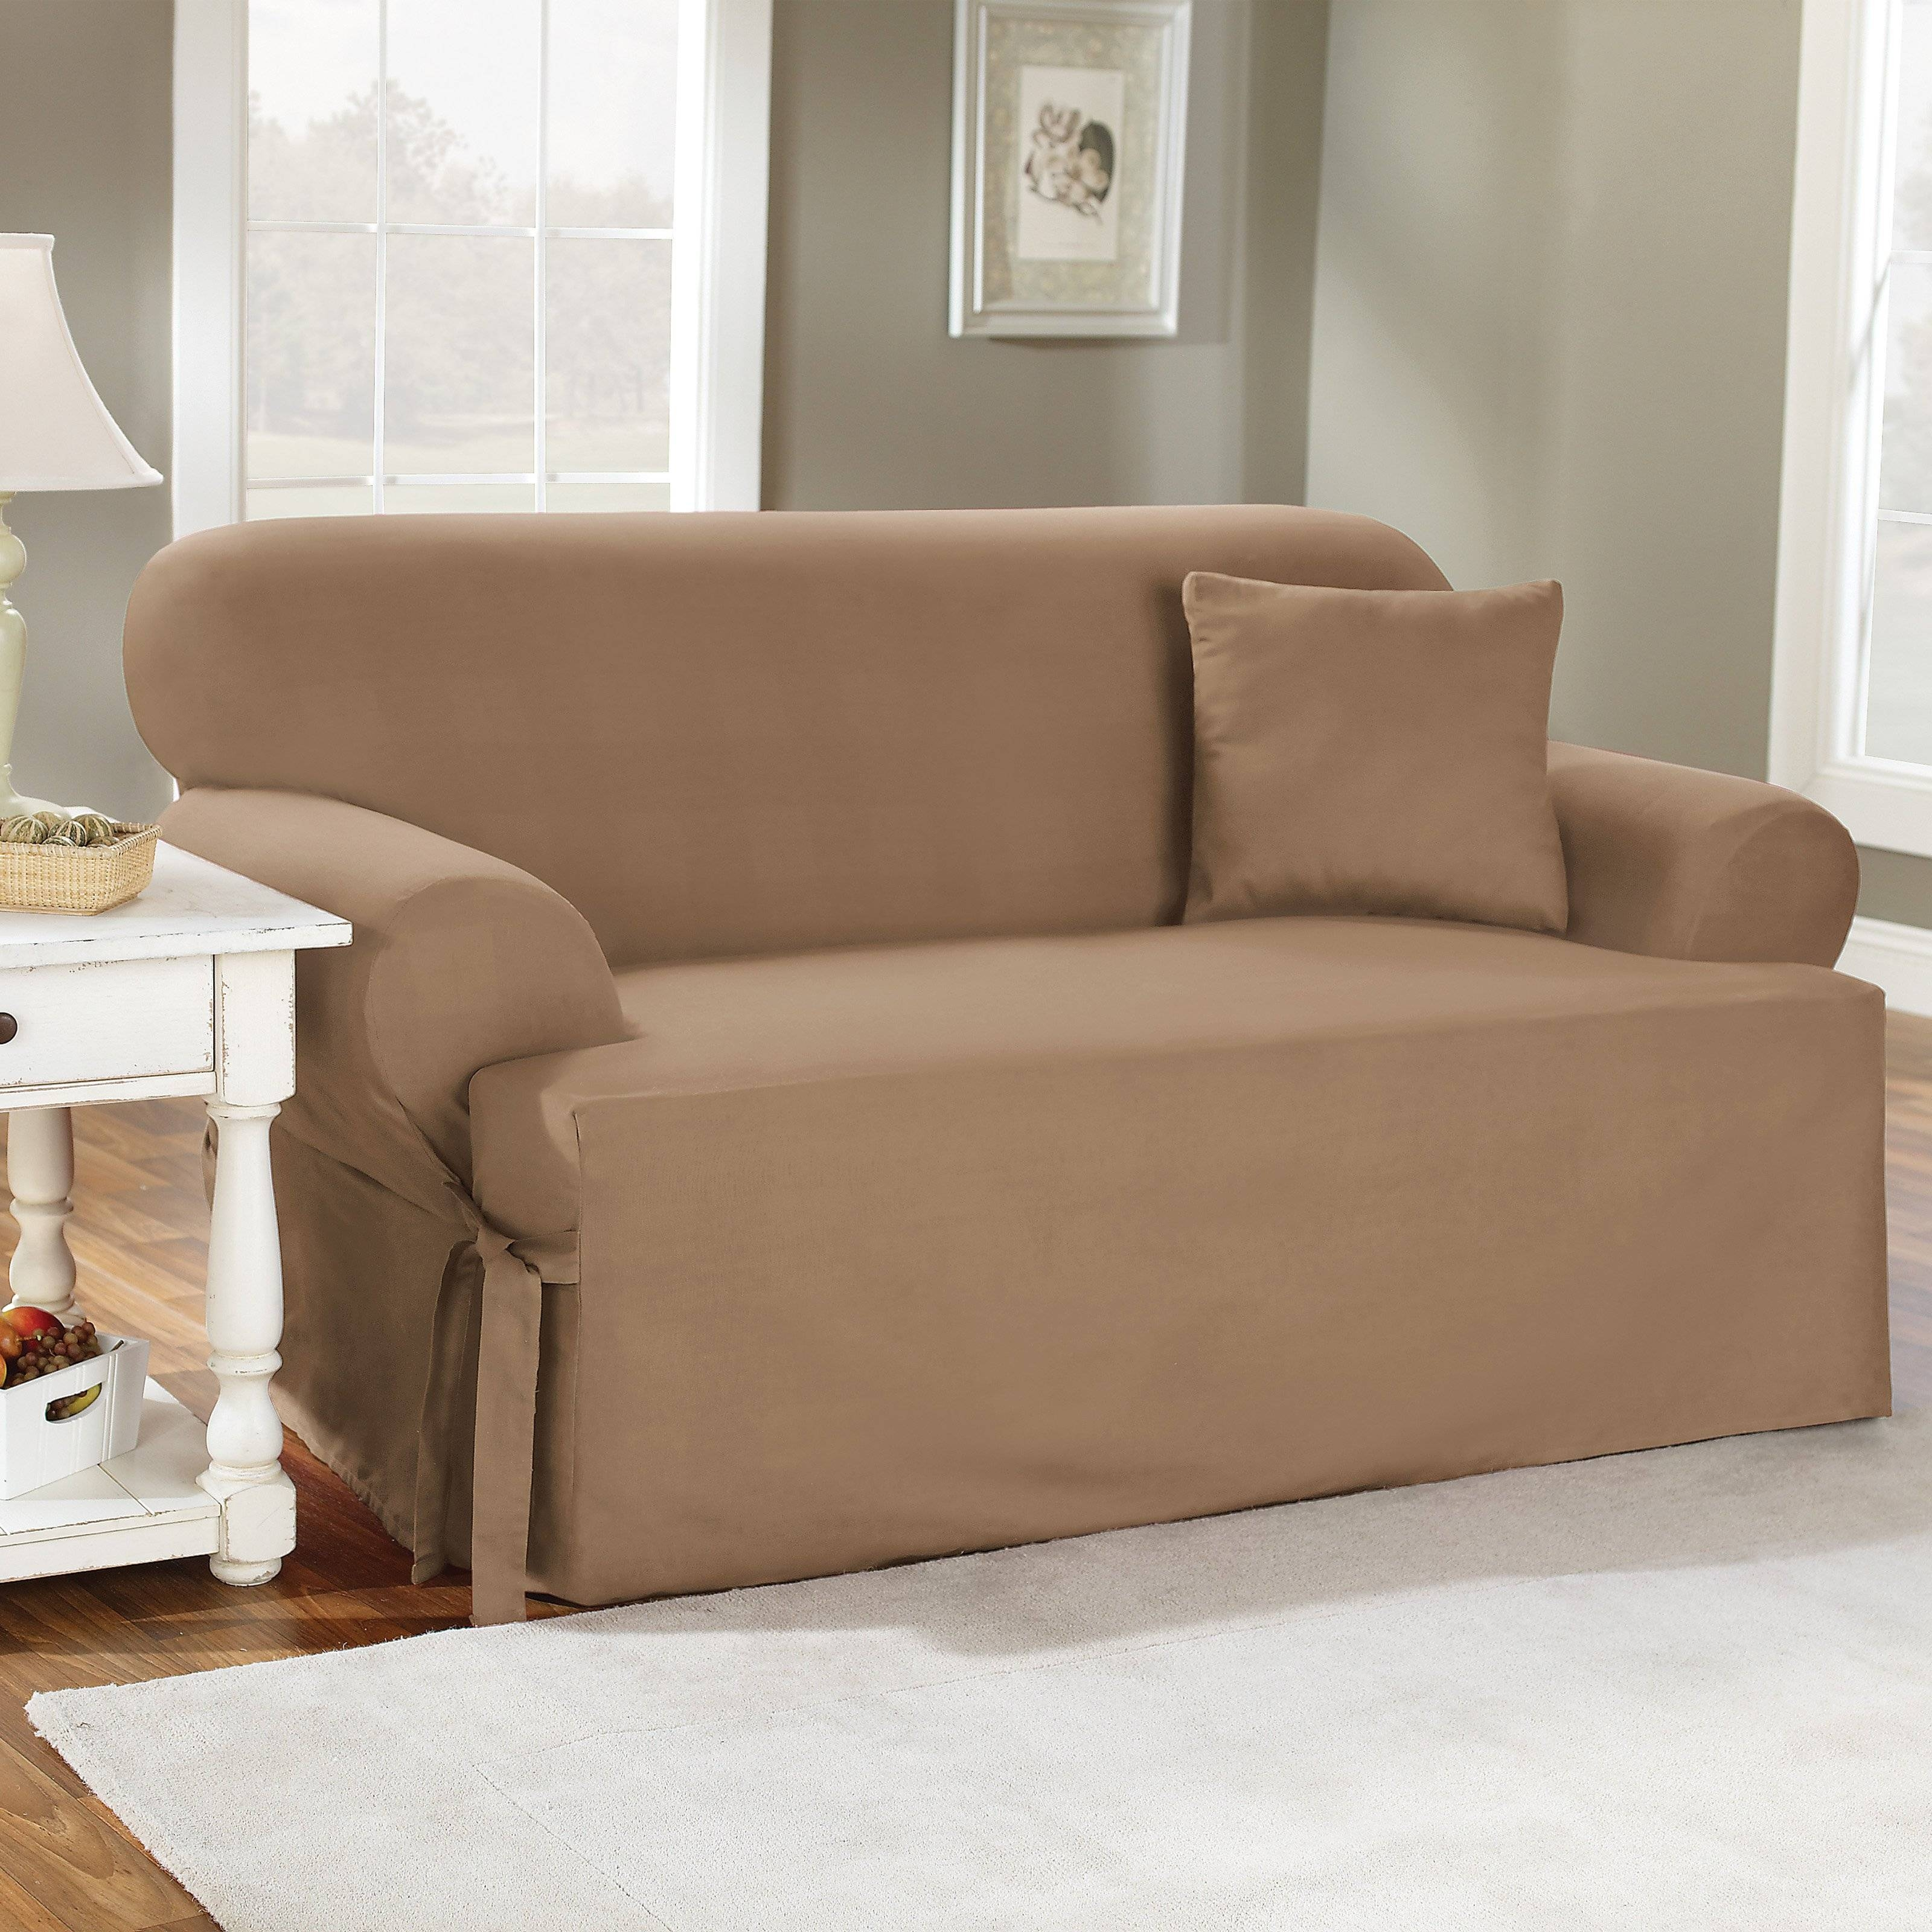 Sure Fit Lexington T-Cushion One Piece Sofa Slipcover | Hayneedle with regard to T Cushion Slipcovers For Large Sofas (Image 10 of 15)